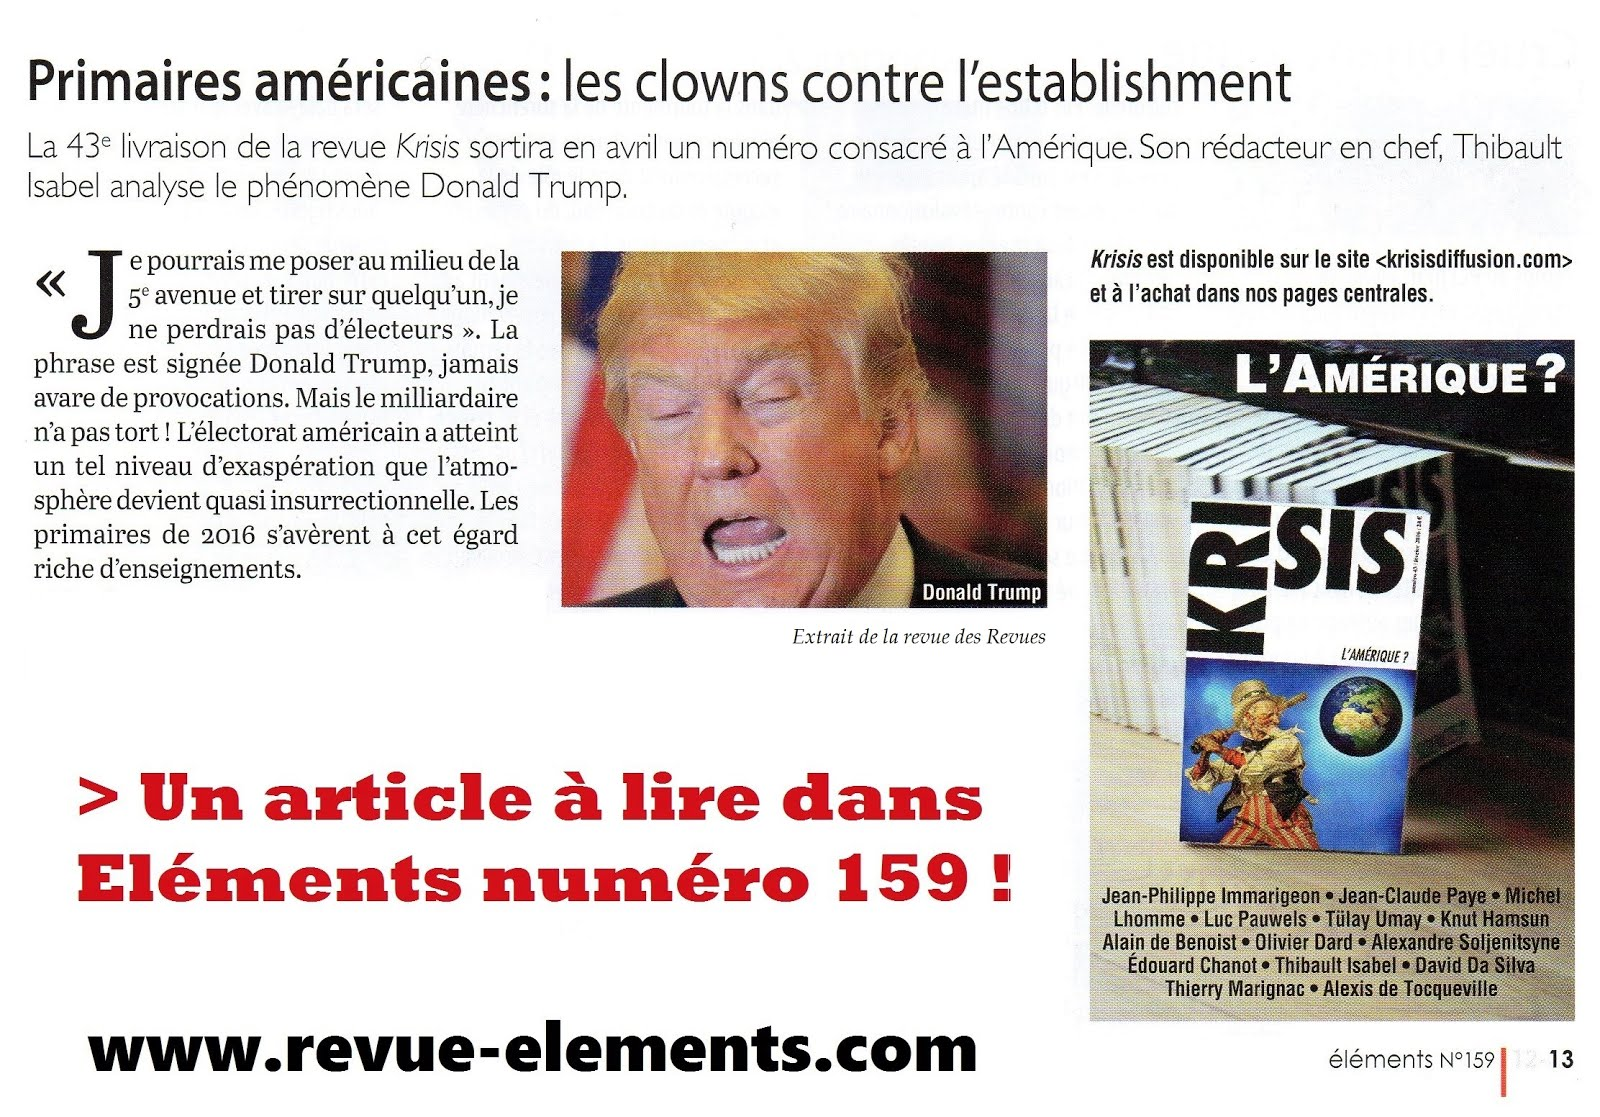 LISEZ ELEMENTS n°159 et KRISIS n°43 !